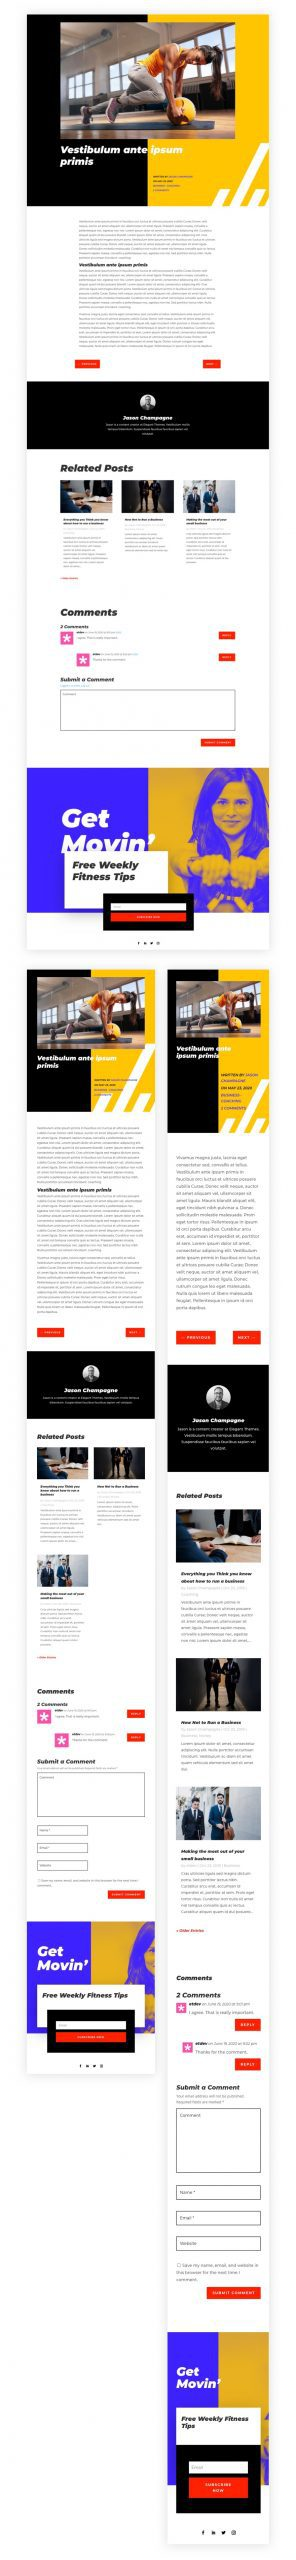 Blog Post Template for Fitness Coach Layout